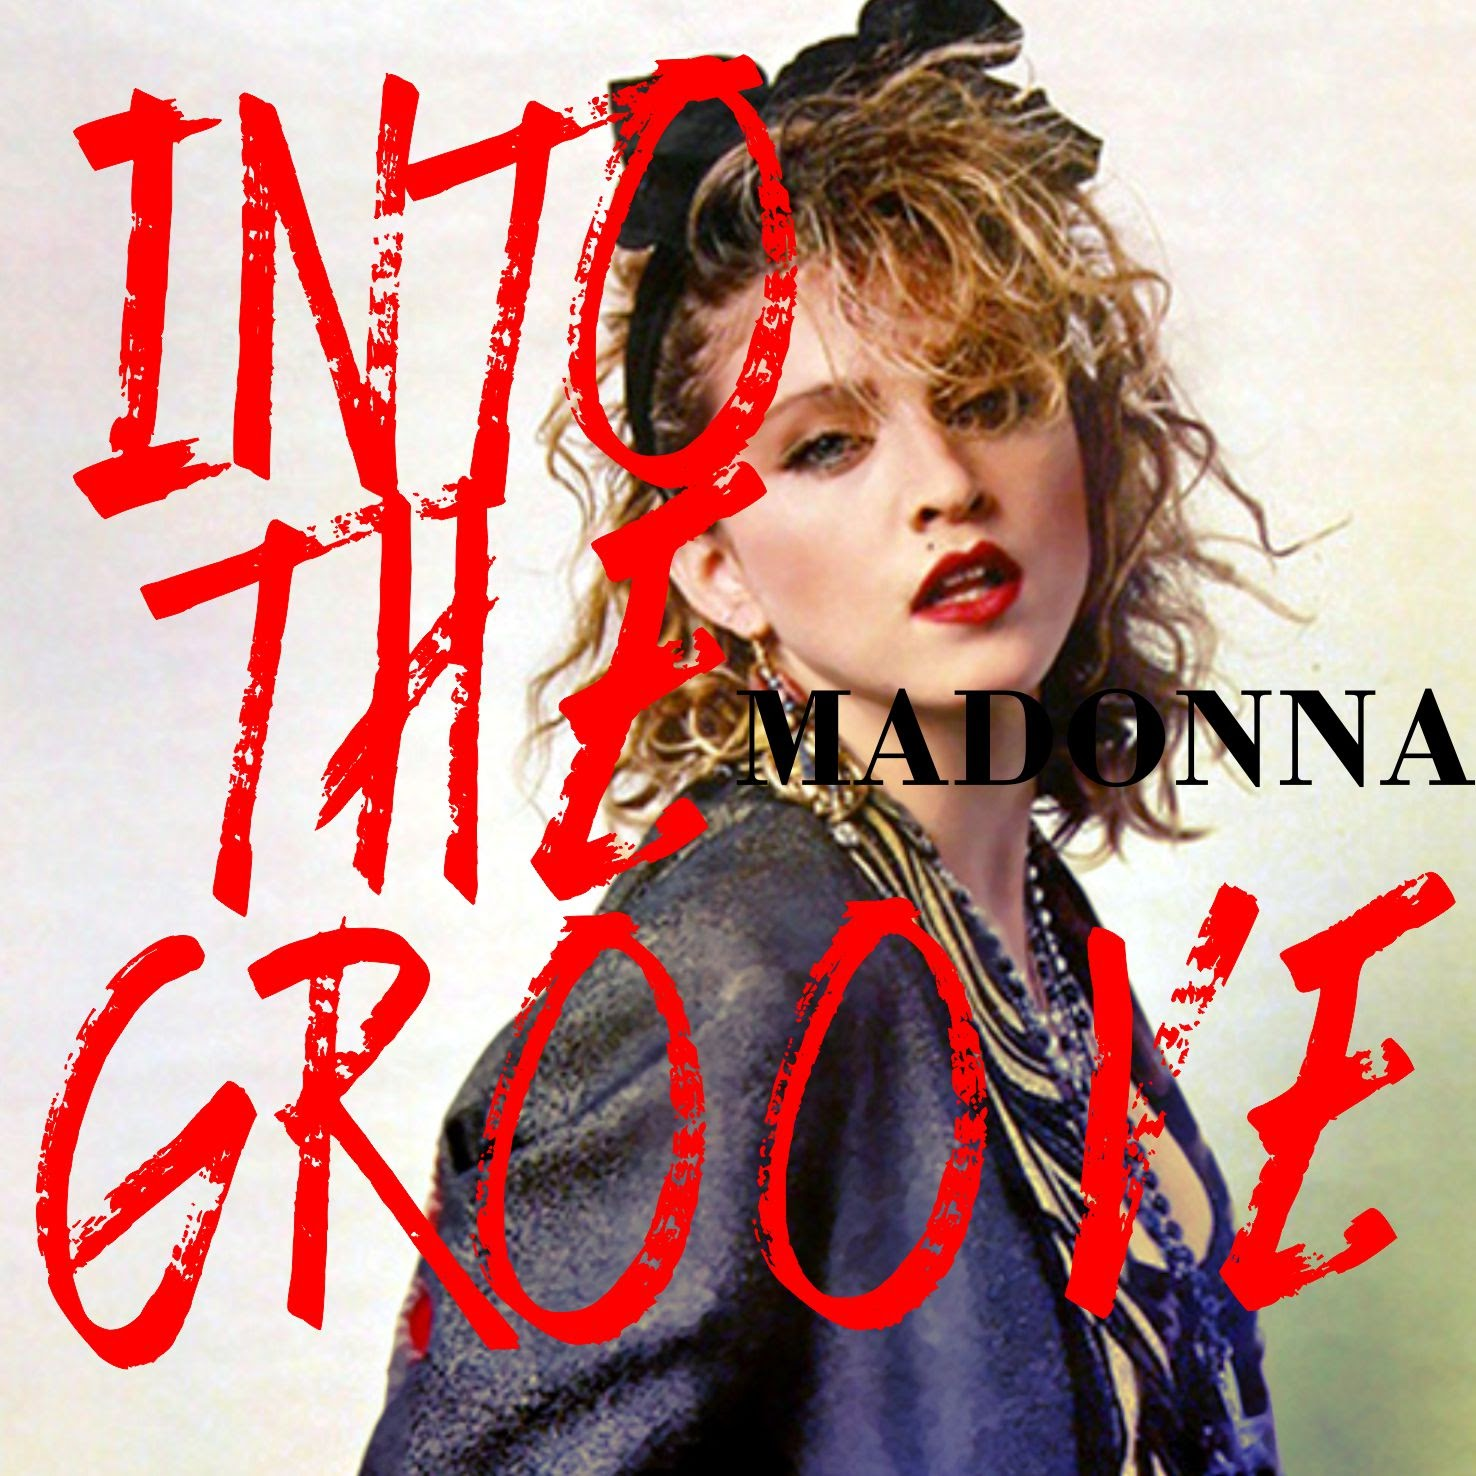 into-the-groove-by-juan-schmidl